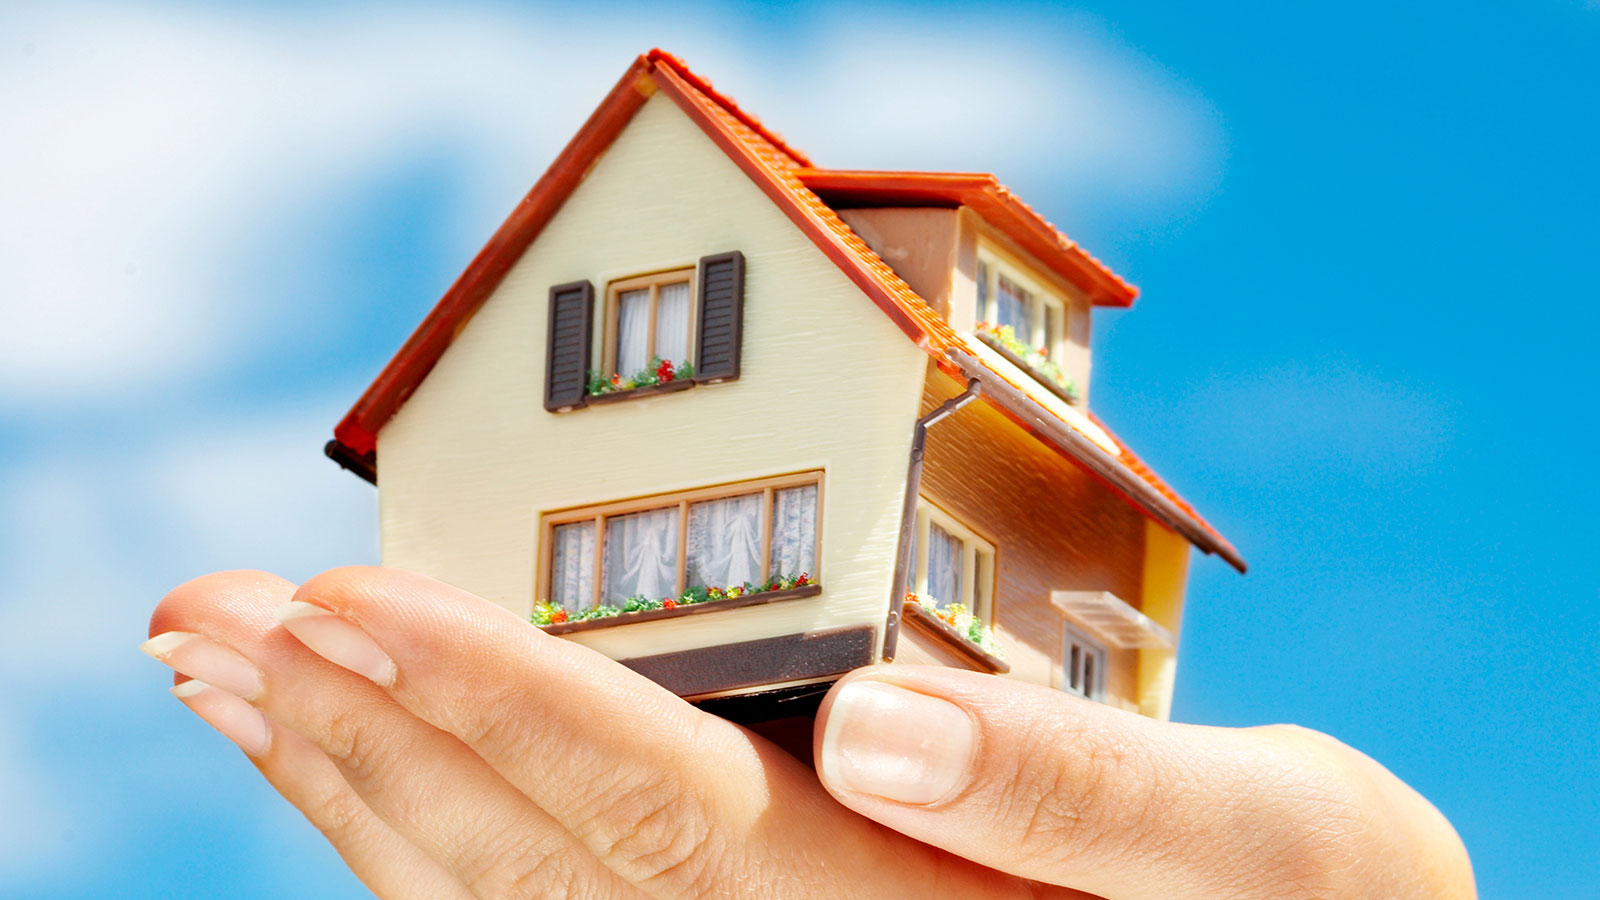 Are You Considering Cash For Houses in Jacksonville Homebuyers?